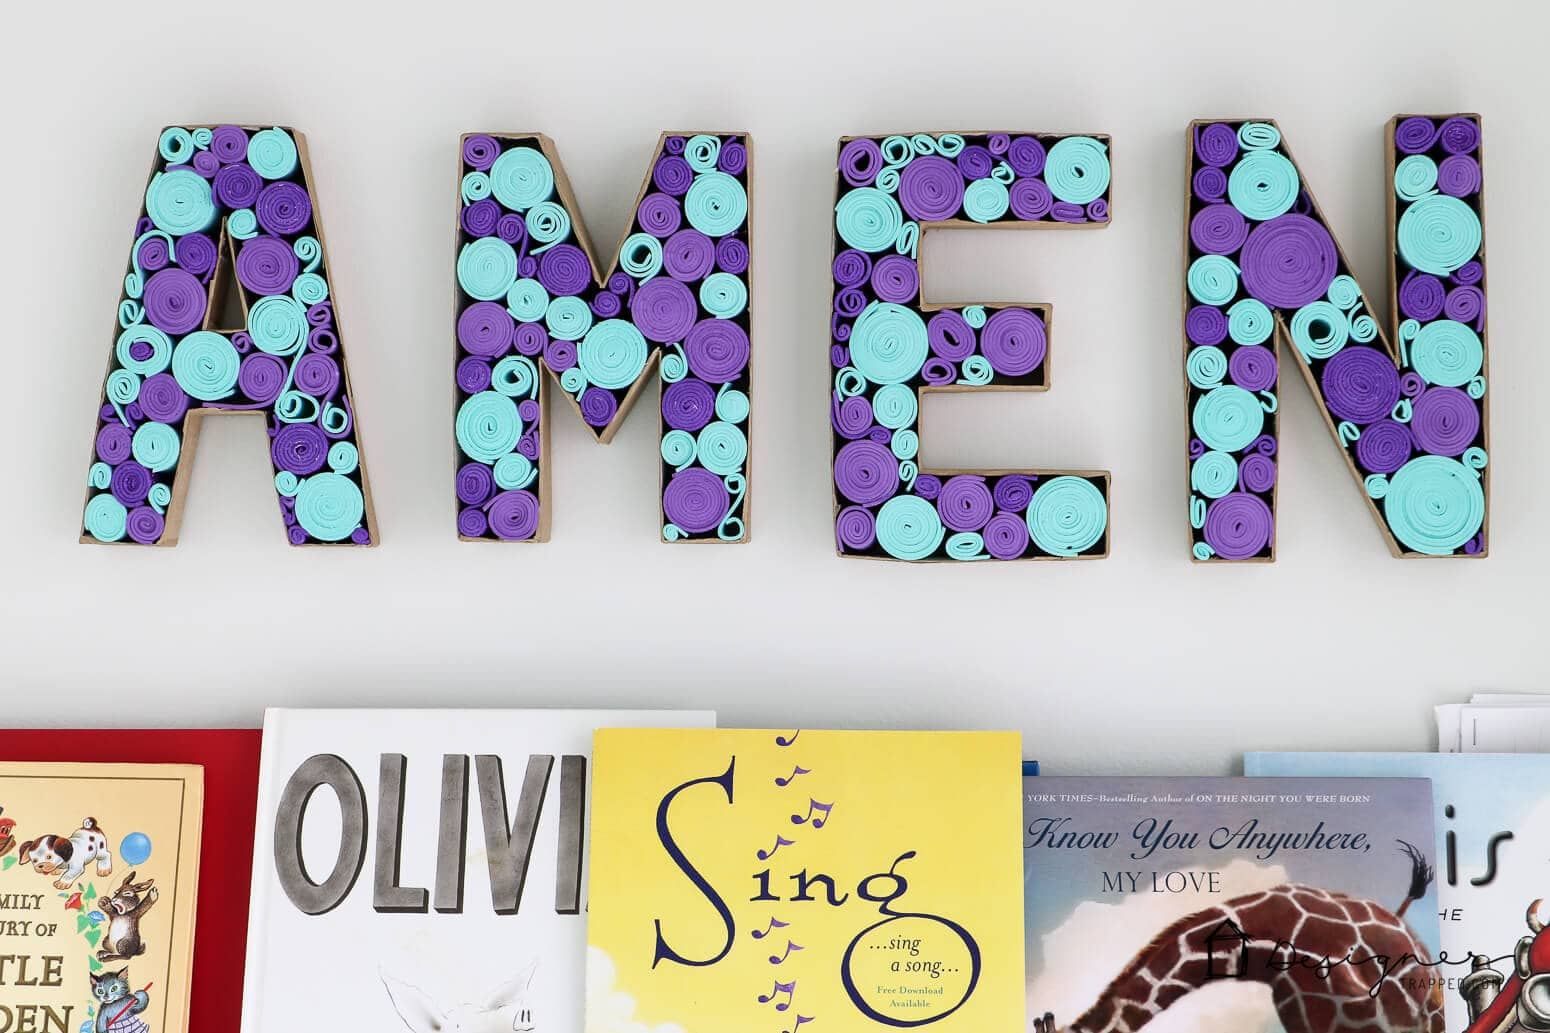 Love these paper mache letters! Awesome DIY wall decor. #walldecor #papermache